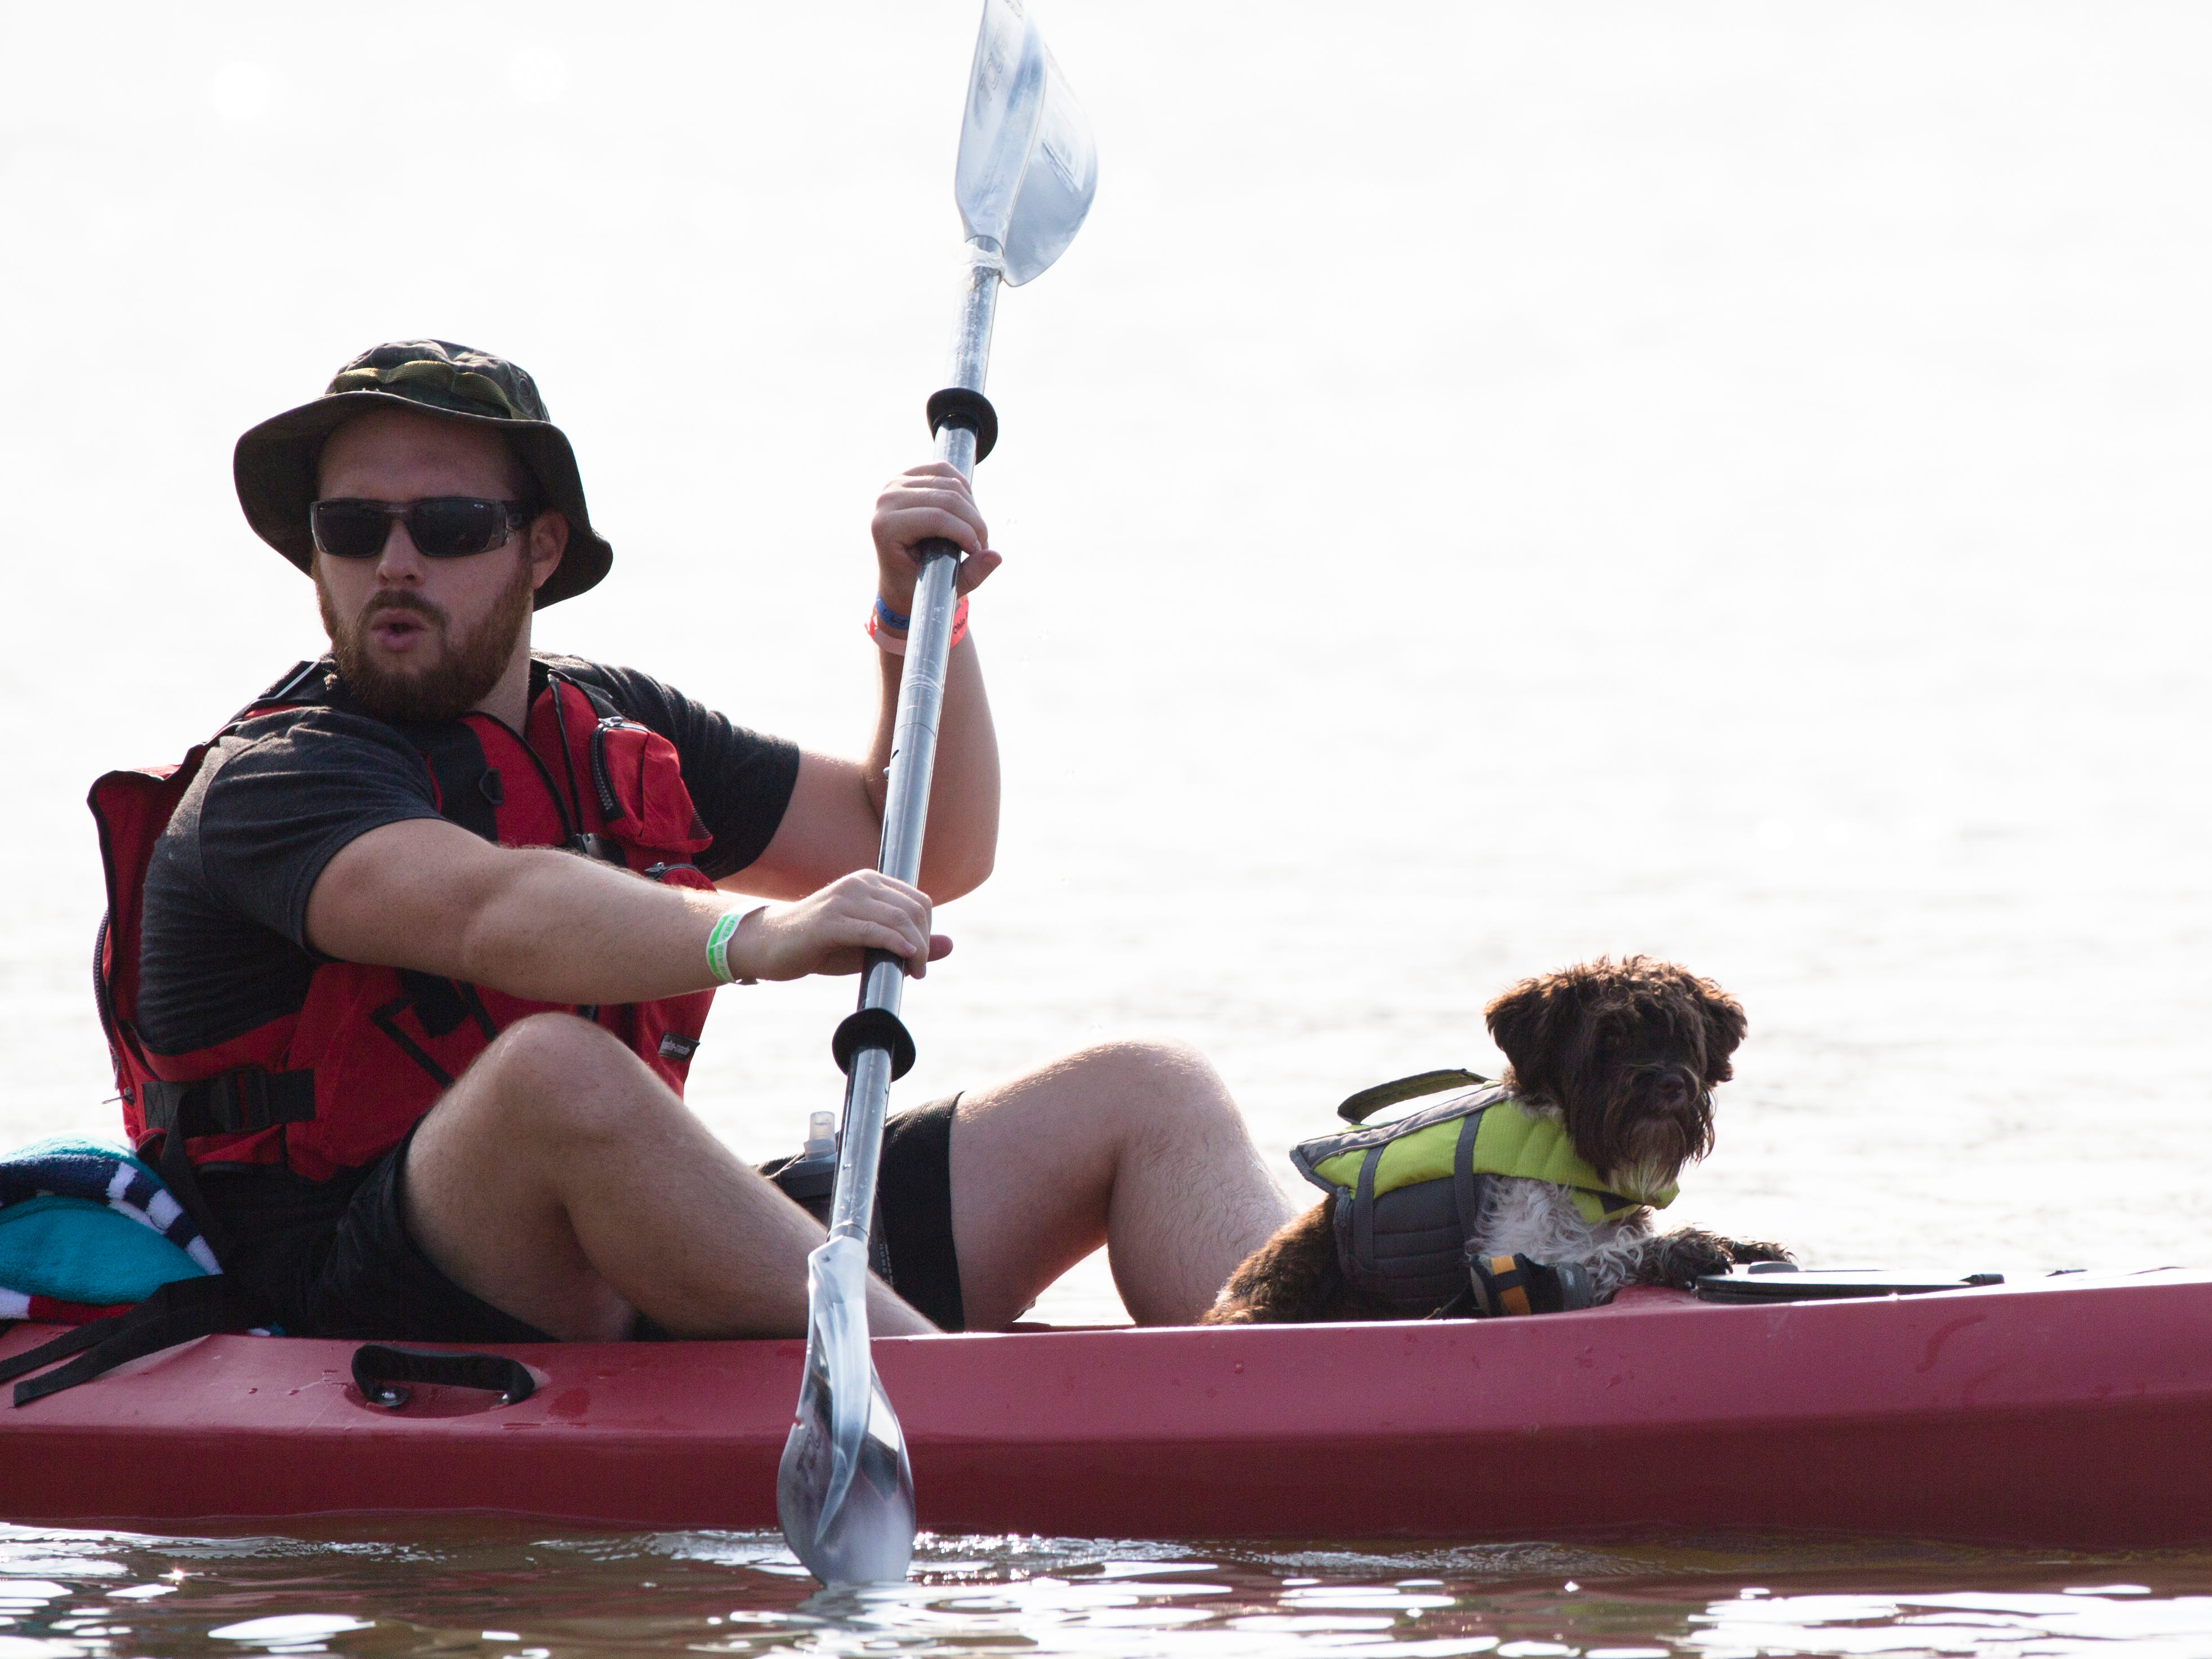 Will Gilliland paddles kayaks down the Ohio River with his dog, Cali, during the 17th annual Ohio River Paddlefest in Cincinnati on Saturday, Aug. 4, 2018.  According to organizers about 2000 people participated in the event which Outdoor Adventure Clubs of Greater Cincinnati raised almost $100,000.